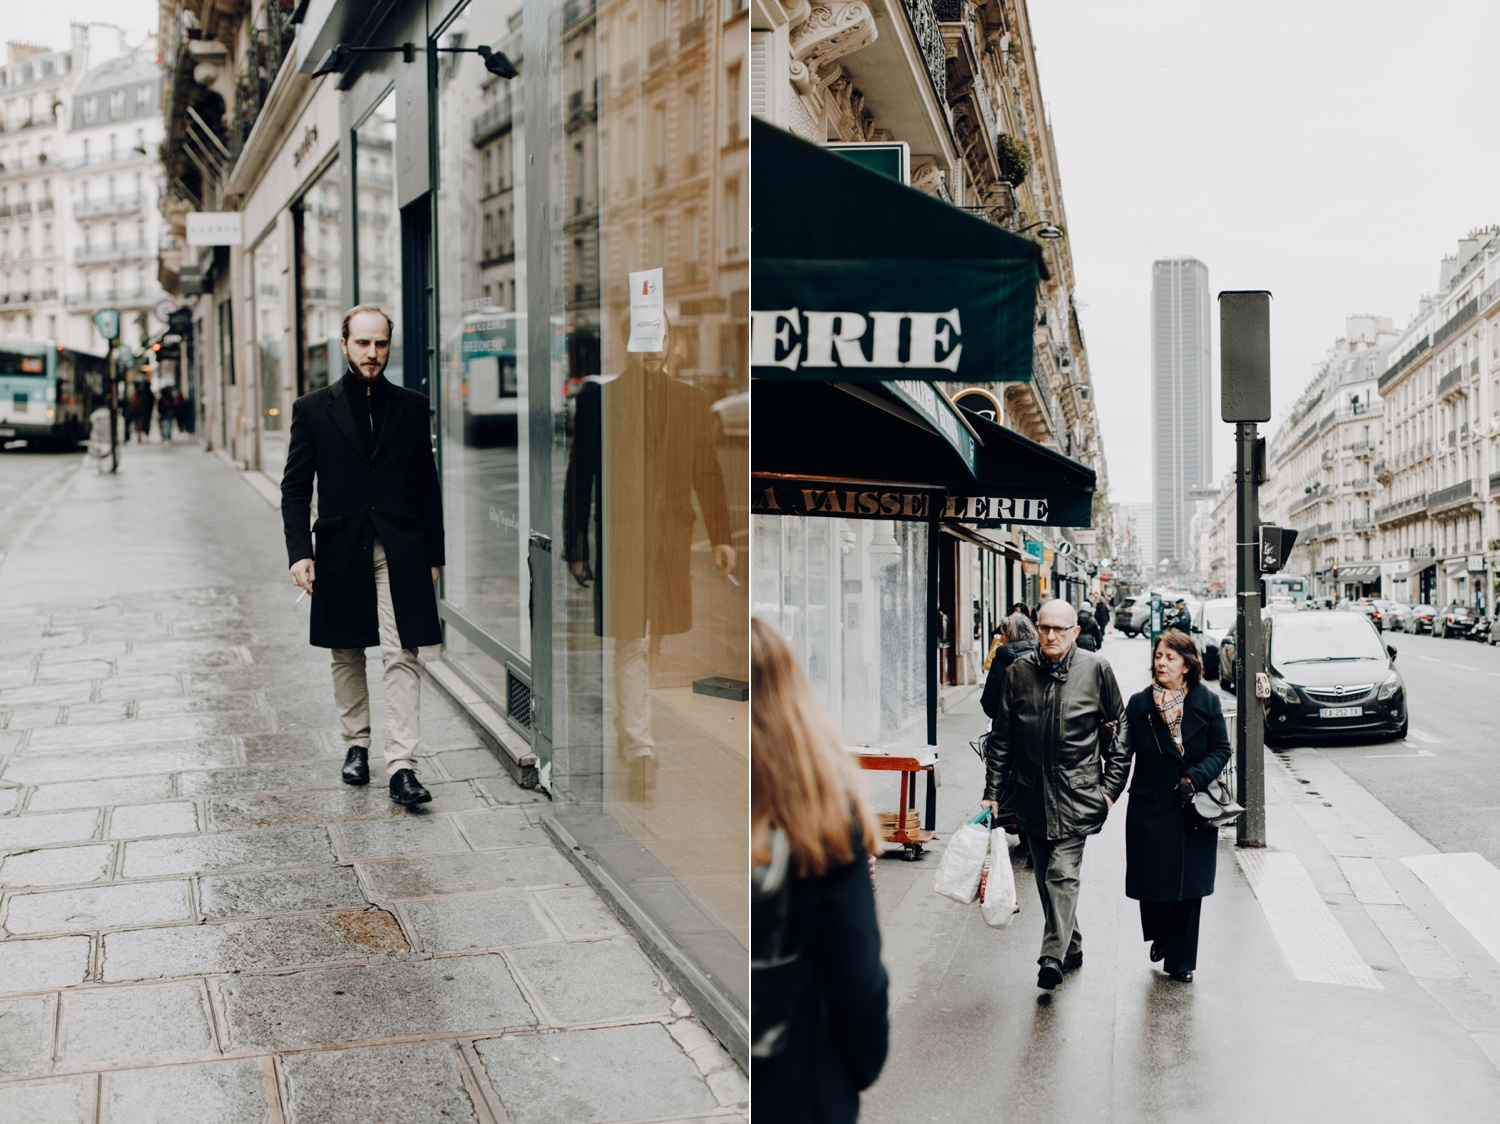 Street photography in Paris, France